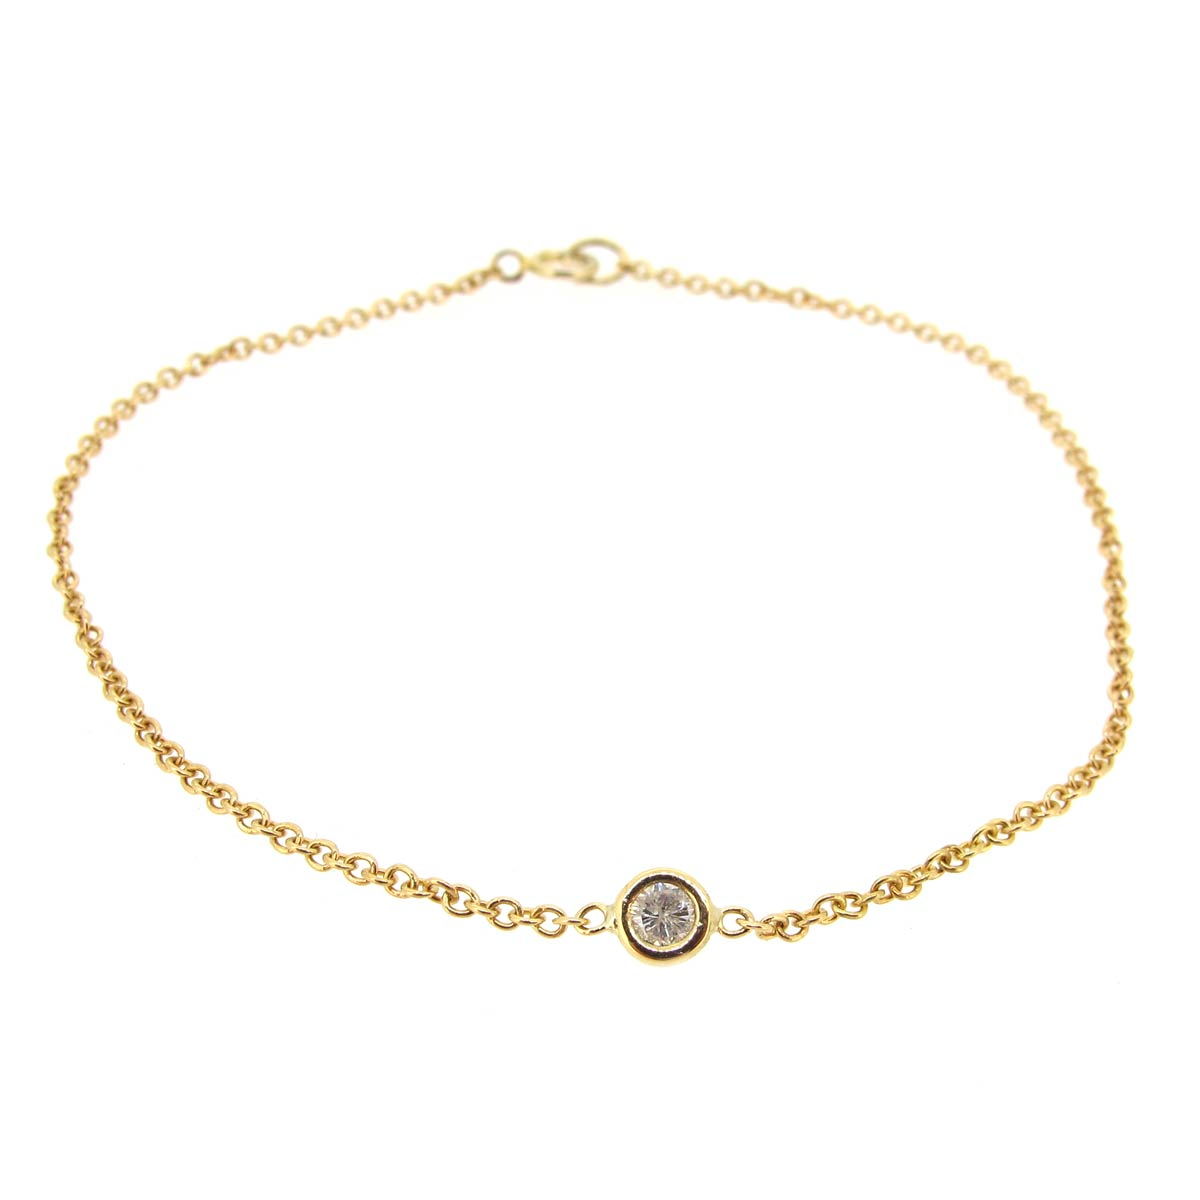 Gold & Single Diamond Bracelet